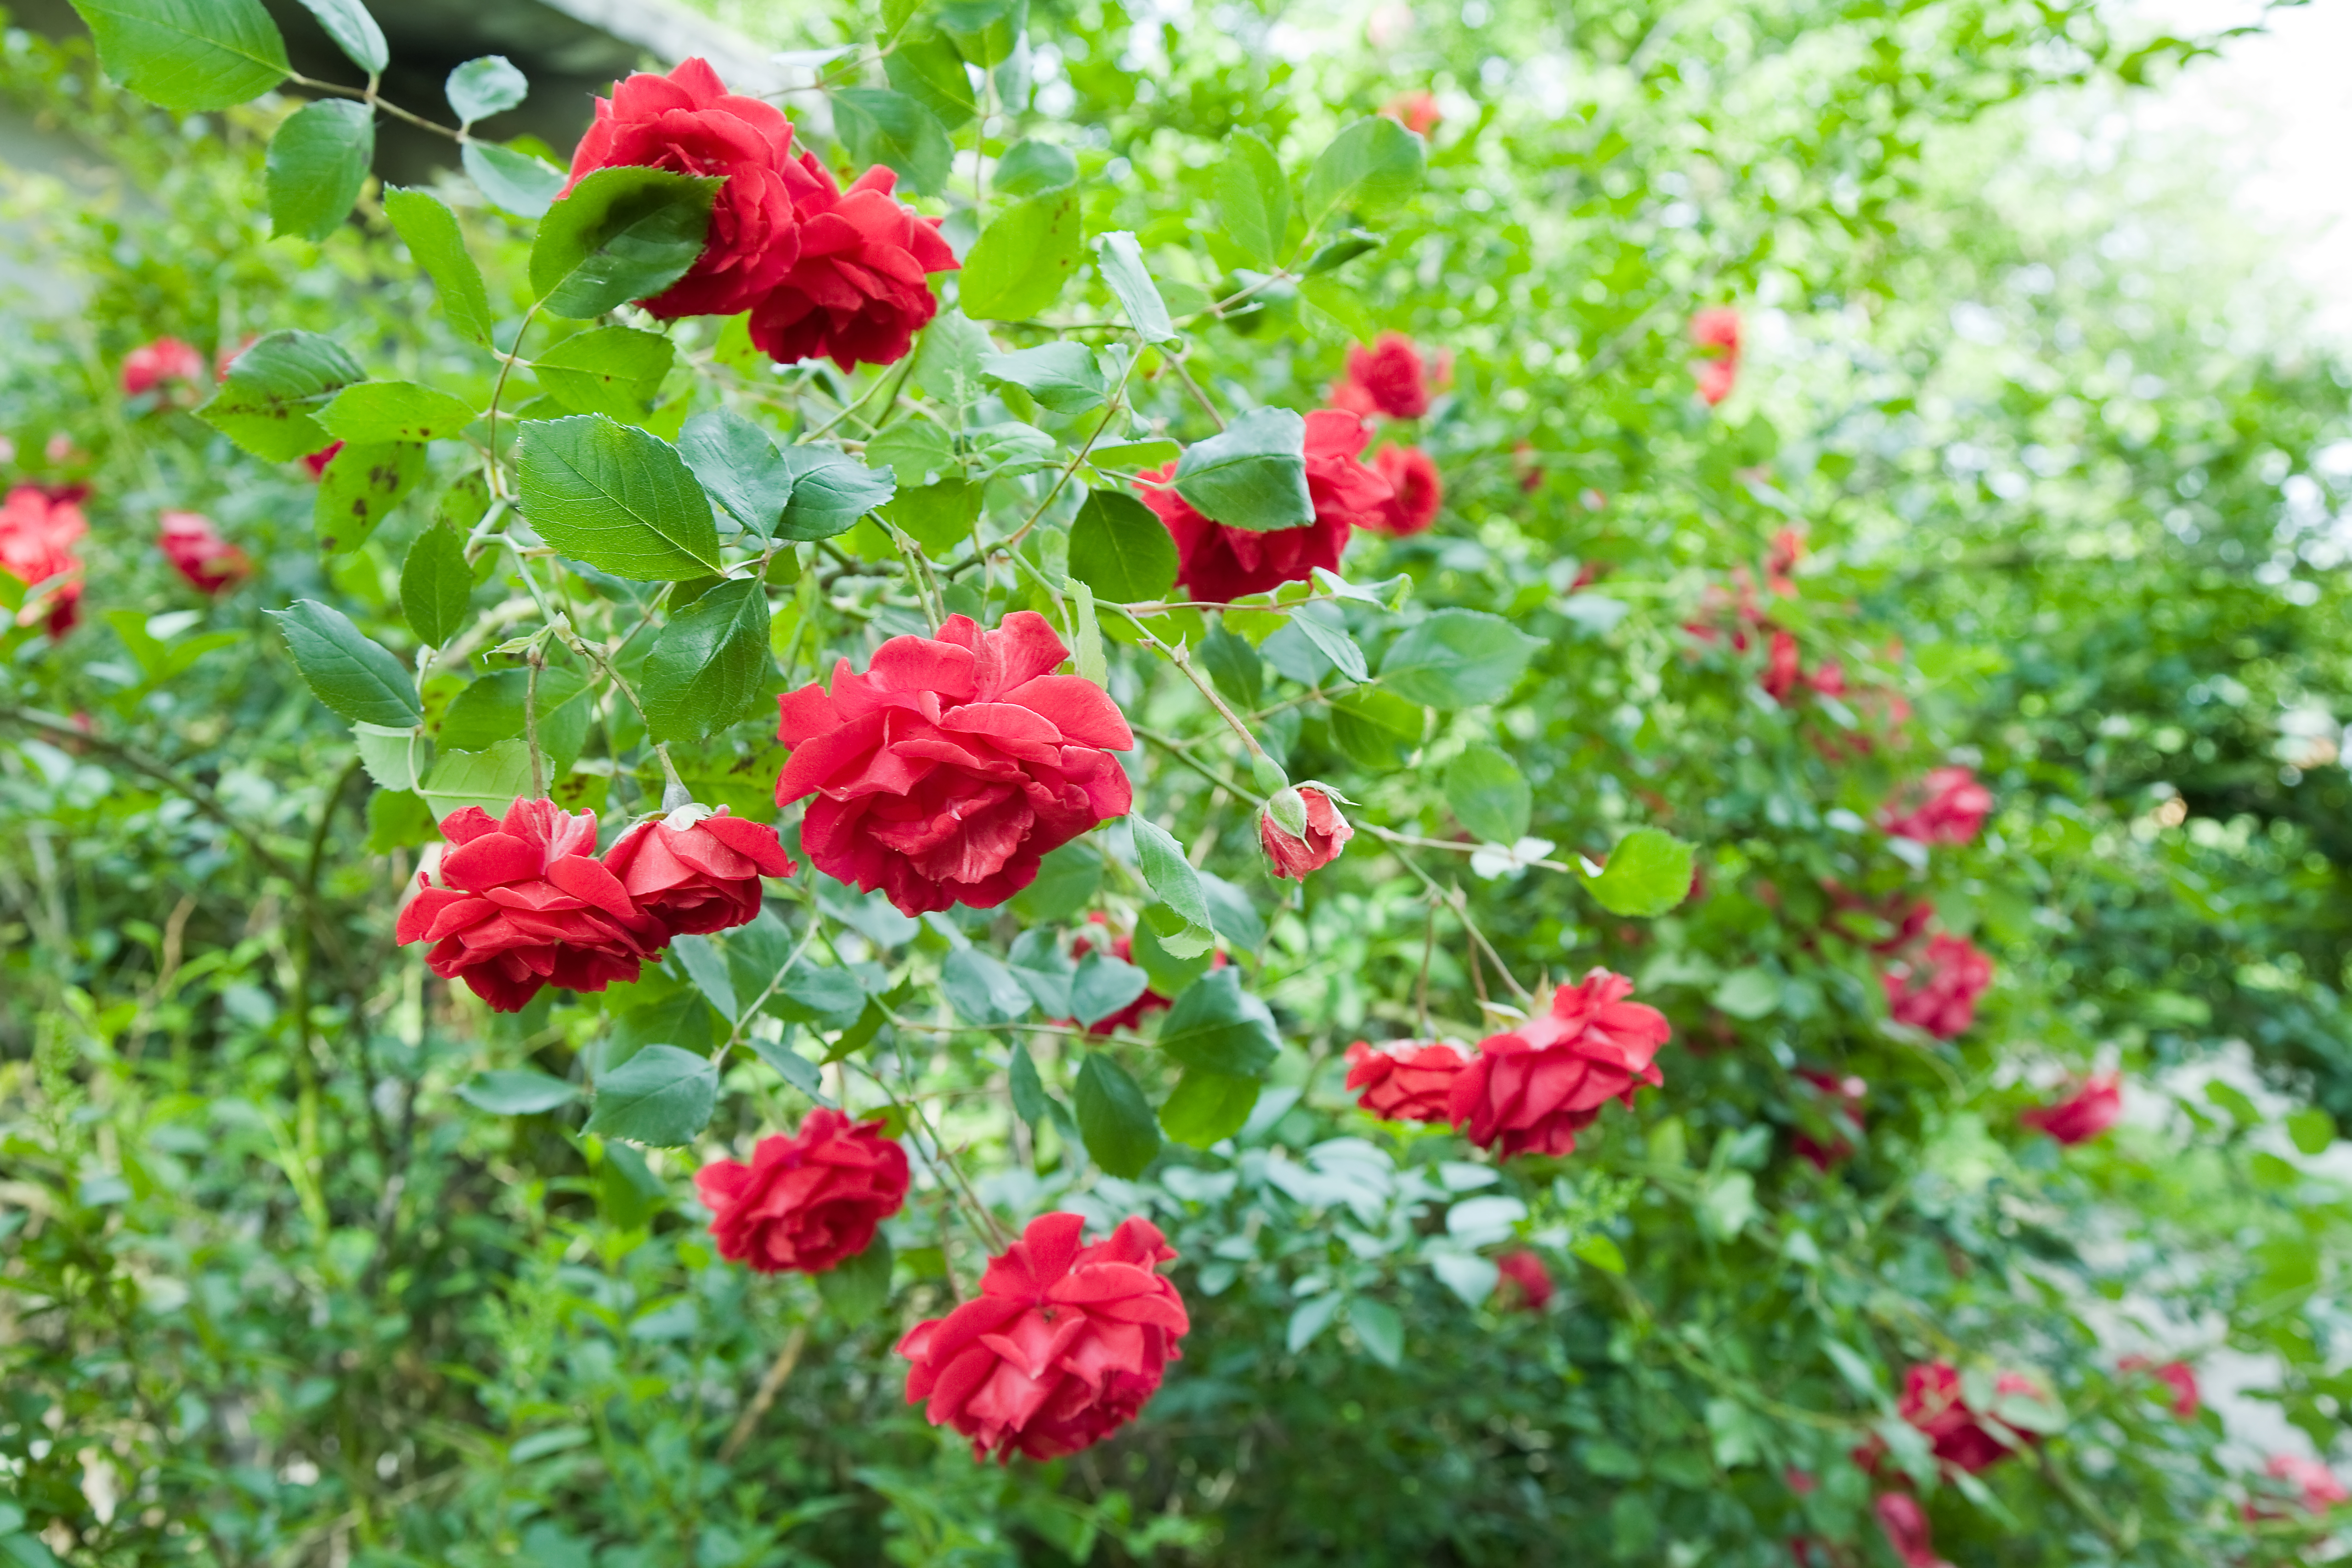 How to Get Rid of Powdery Mildew on Rose Bushes | Home